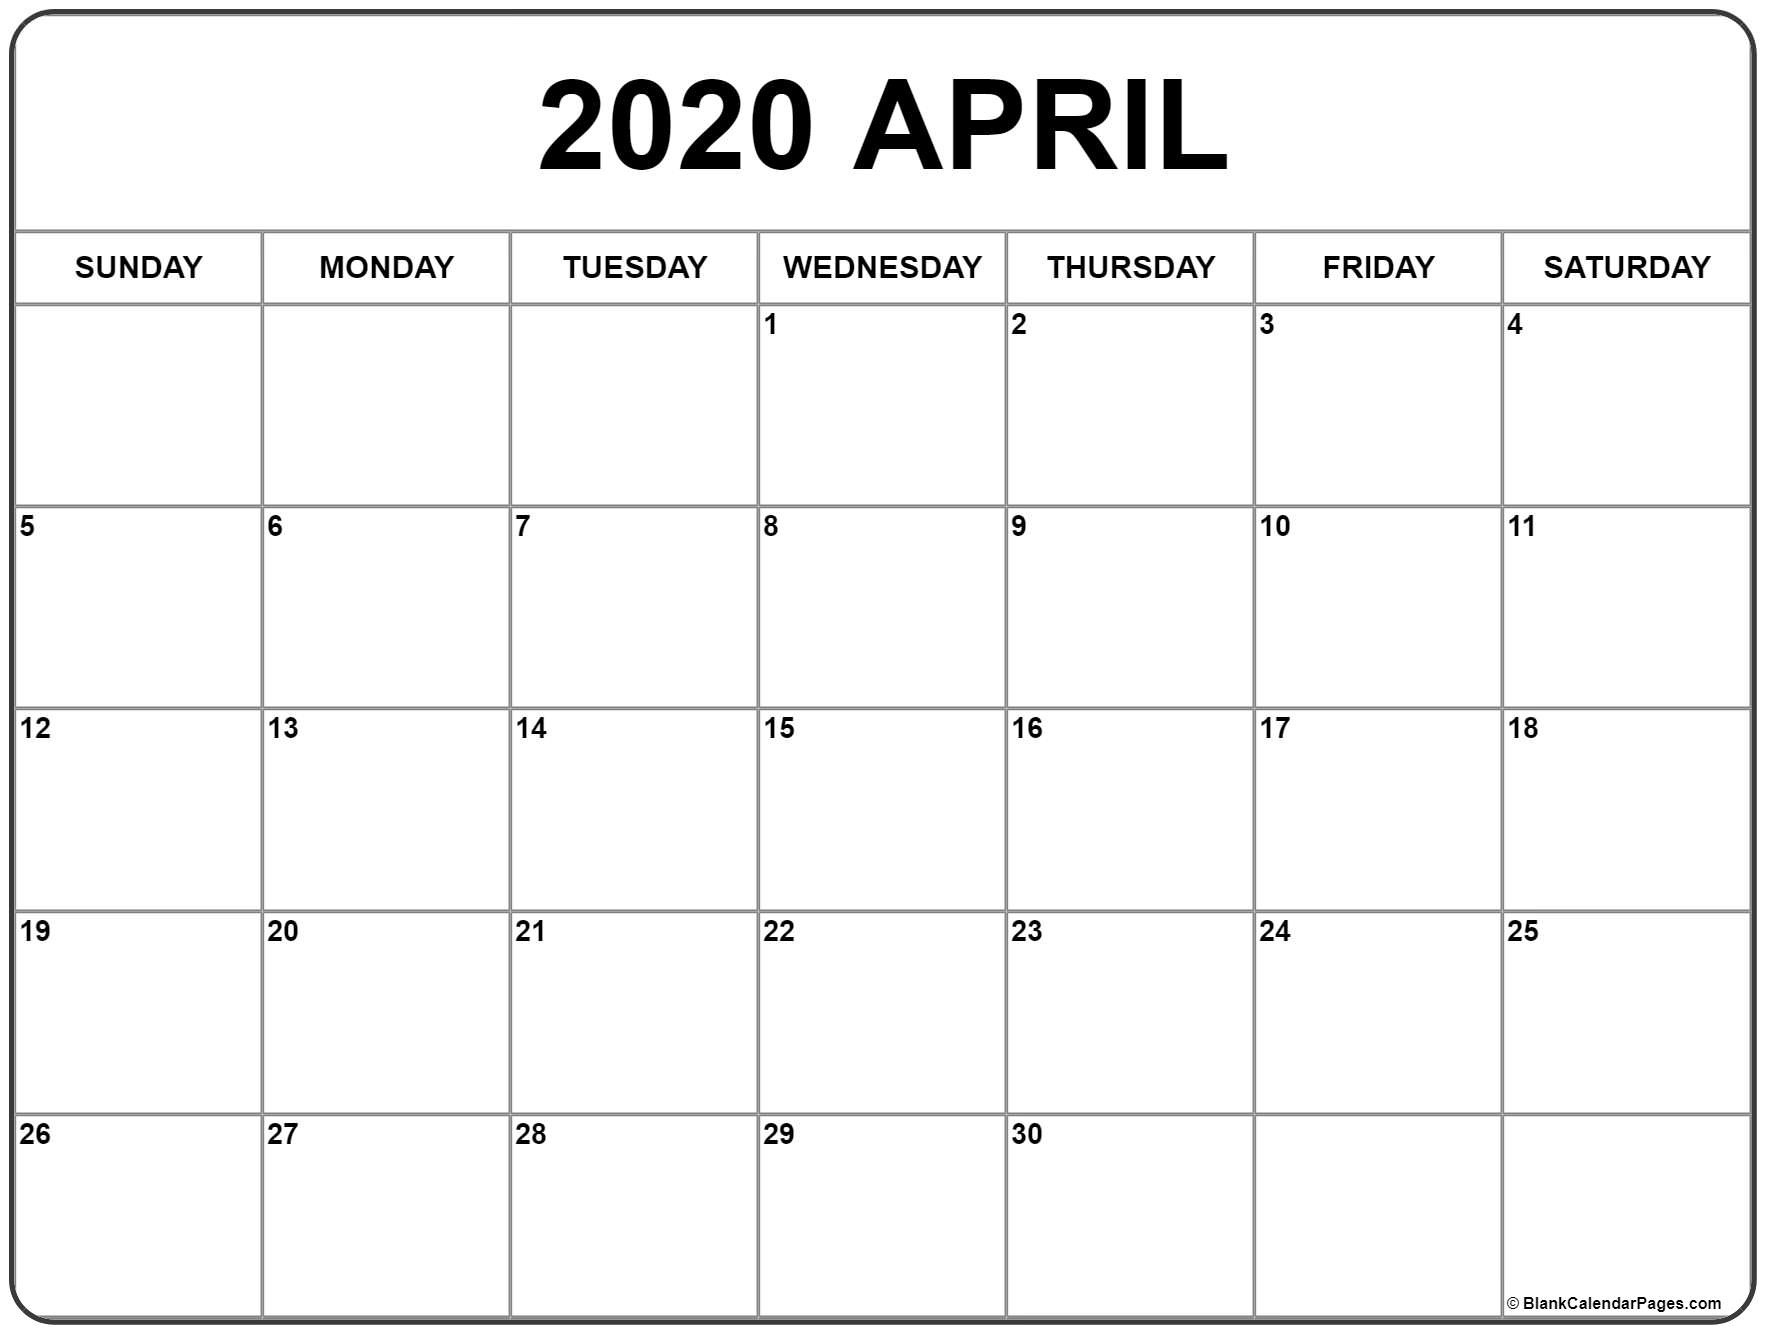 April 2020 Calendar | Free Printable Monthly Calendars  Full Size Printable Calendar 2020